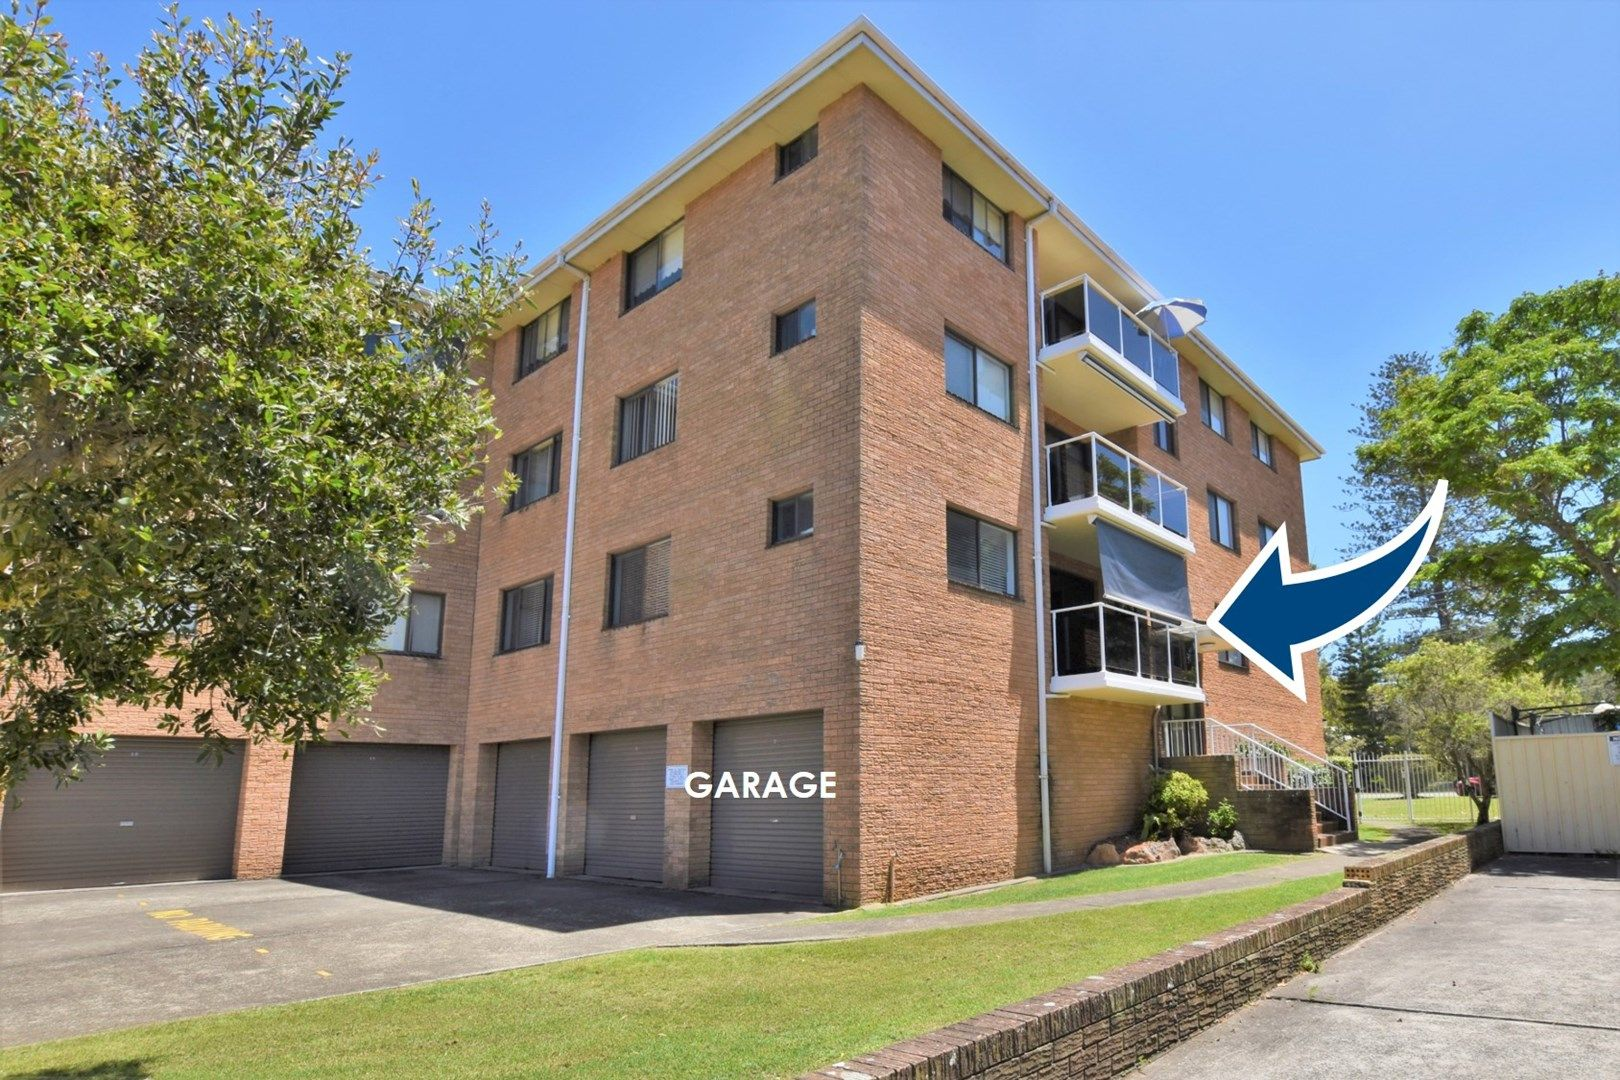 7/12 Taree Street, Tuncurry NSW 2428, Image 0